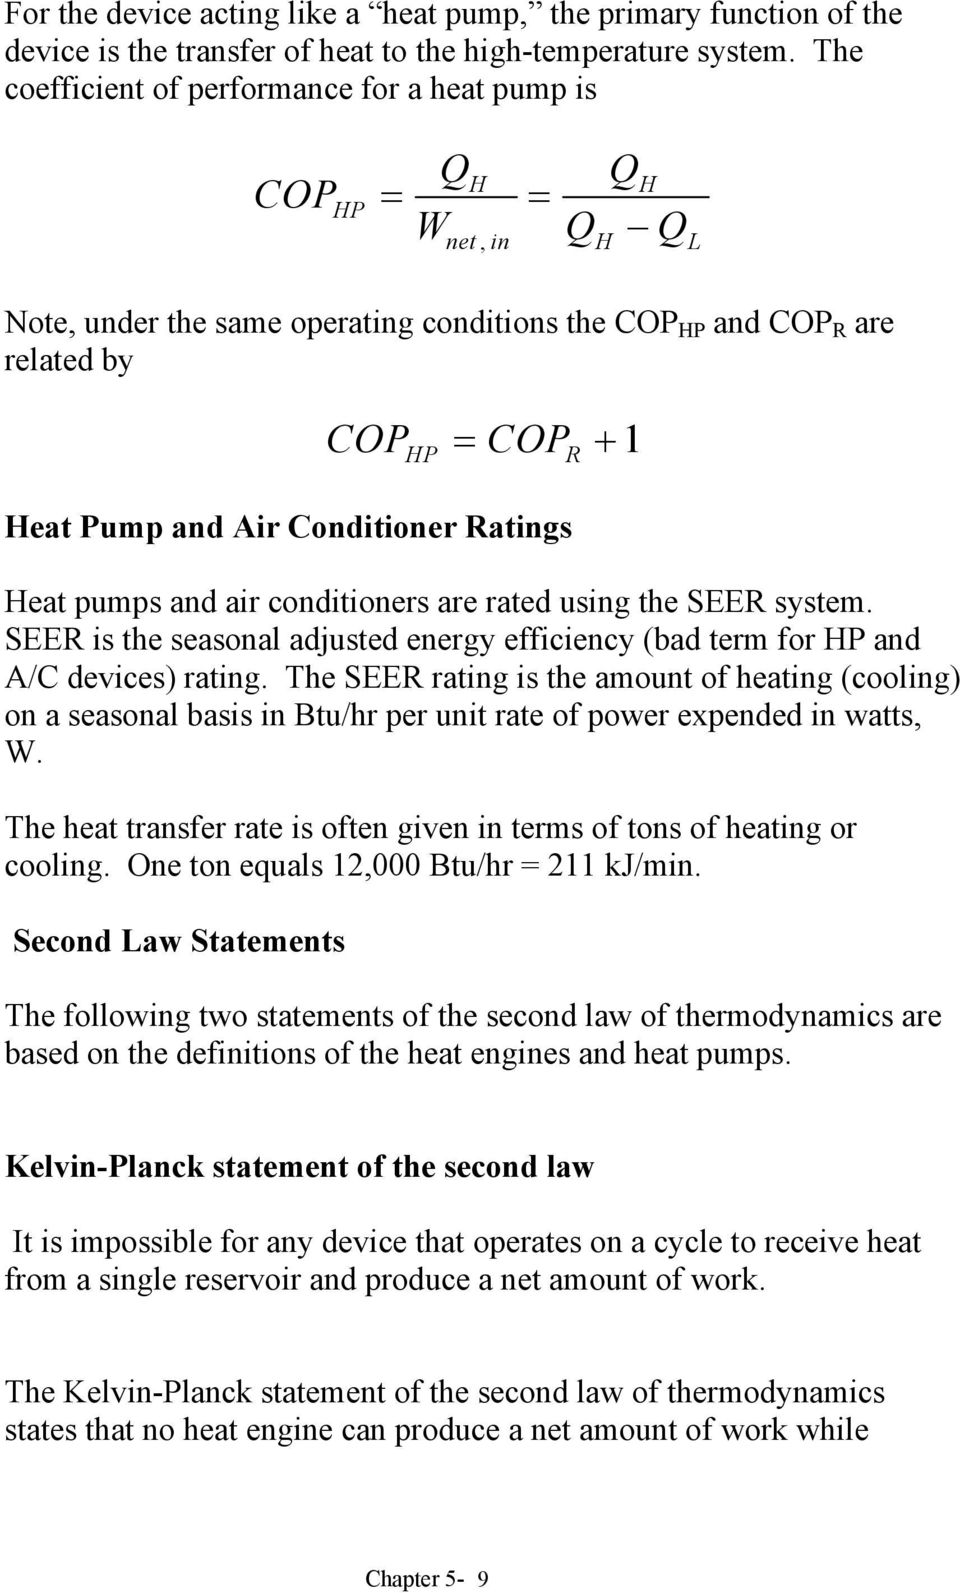 pumps and air conditioners are rated using the SEER system. SEER is the seasonal adjusted energy efficiency (bad term for P and A/C devices) rating.